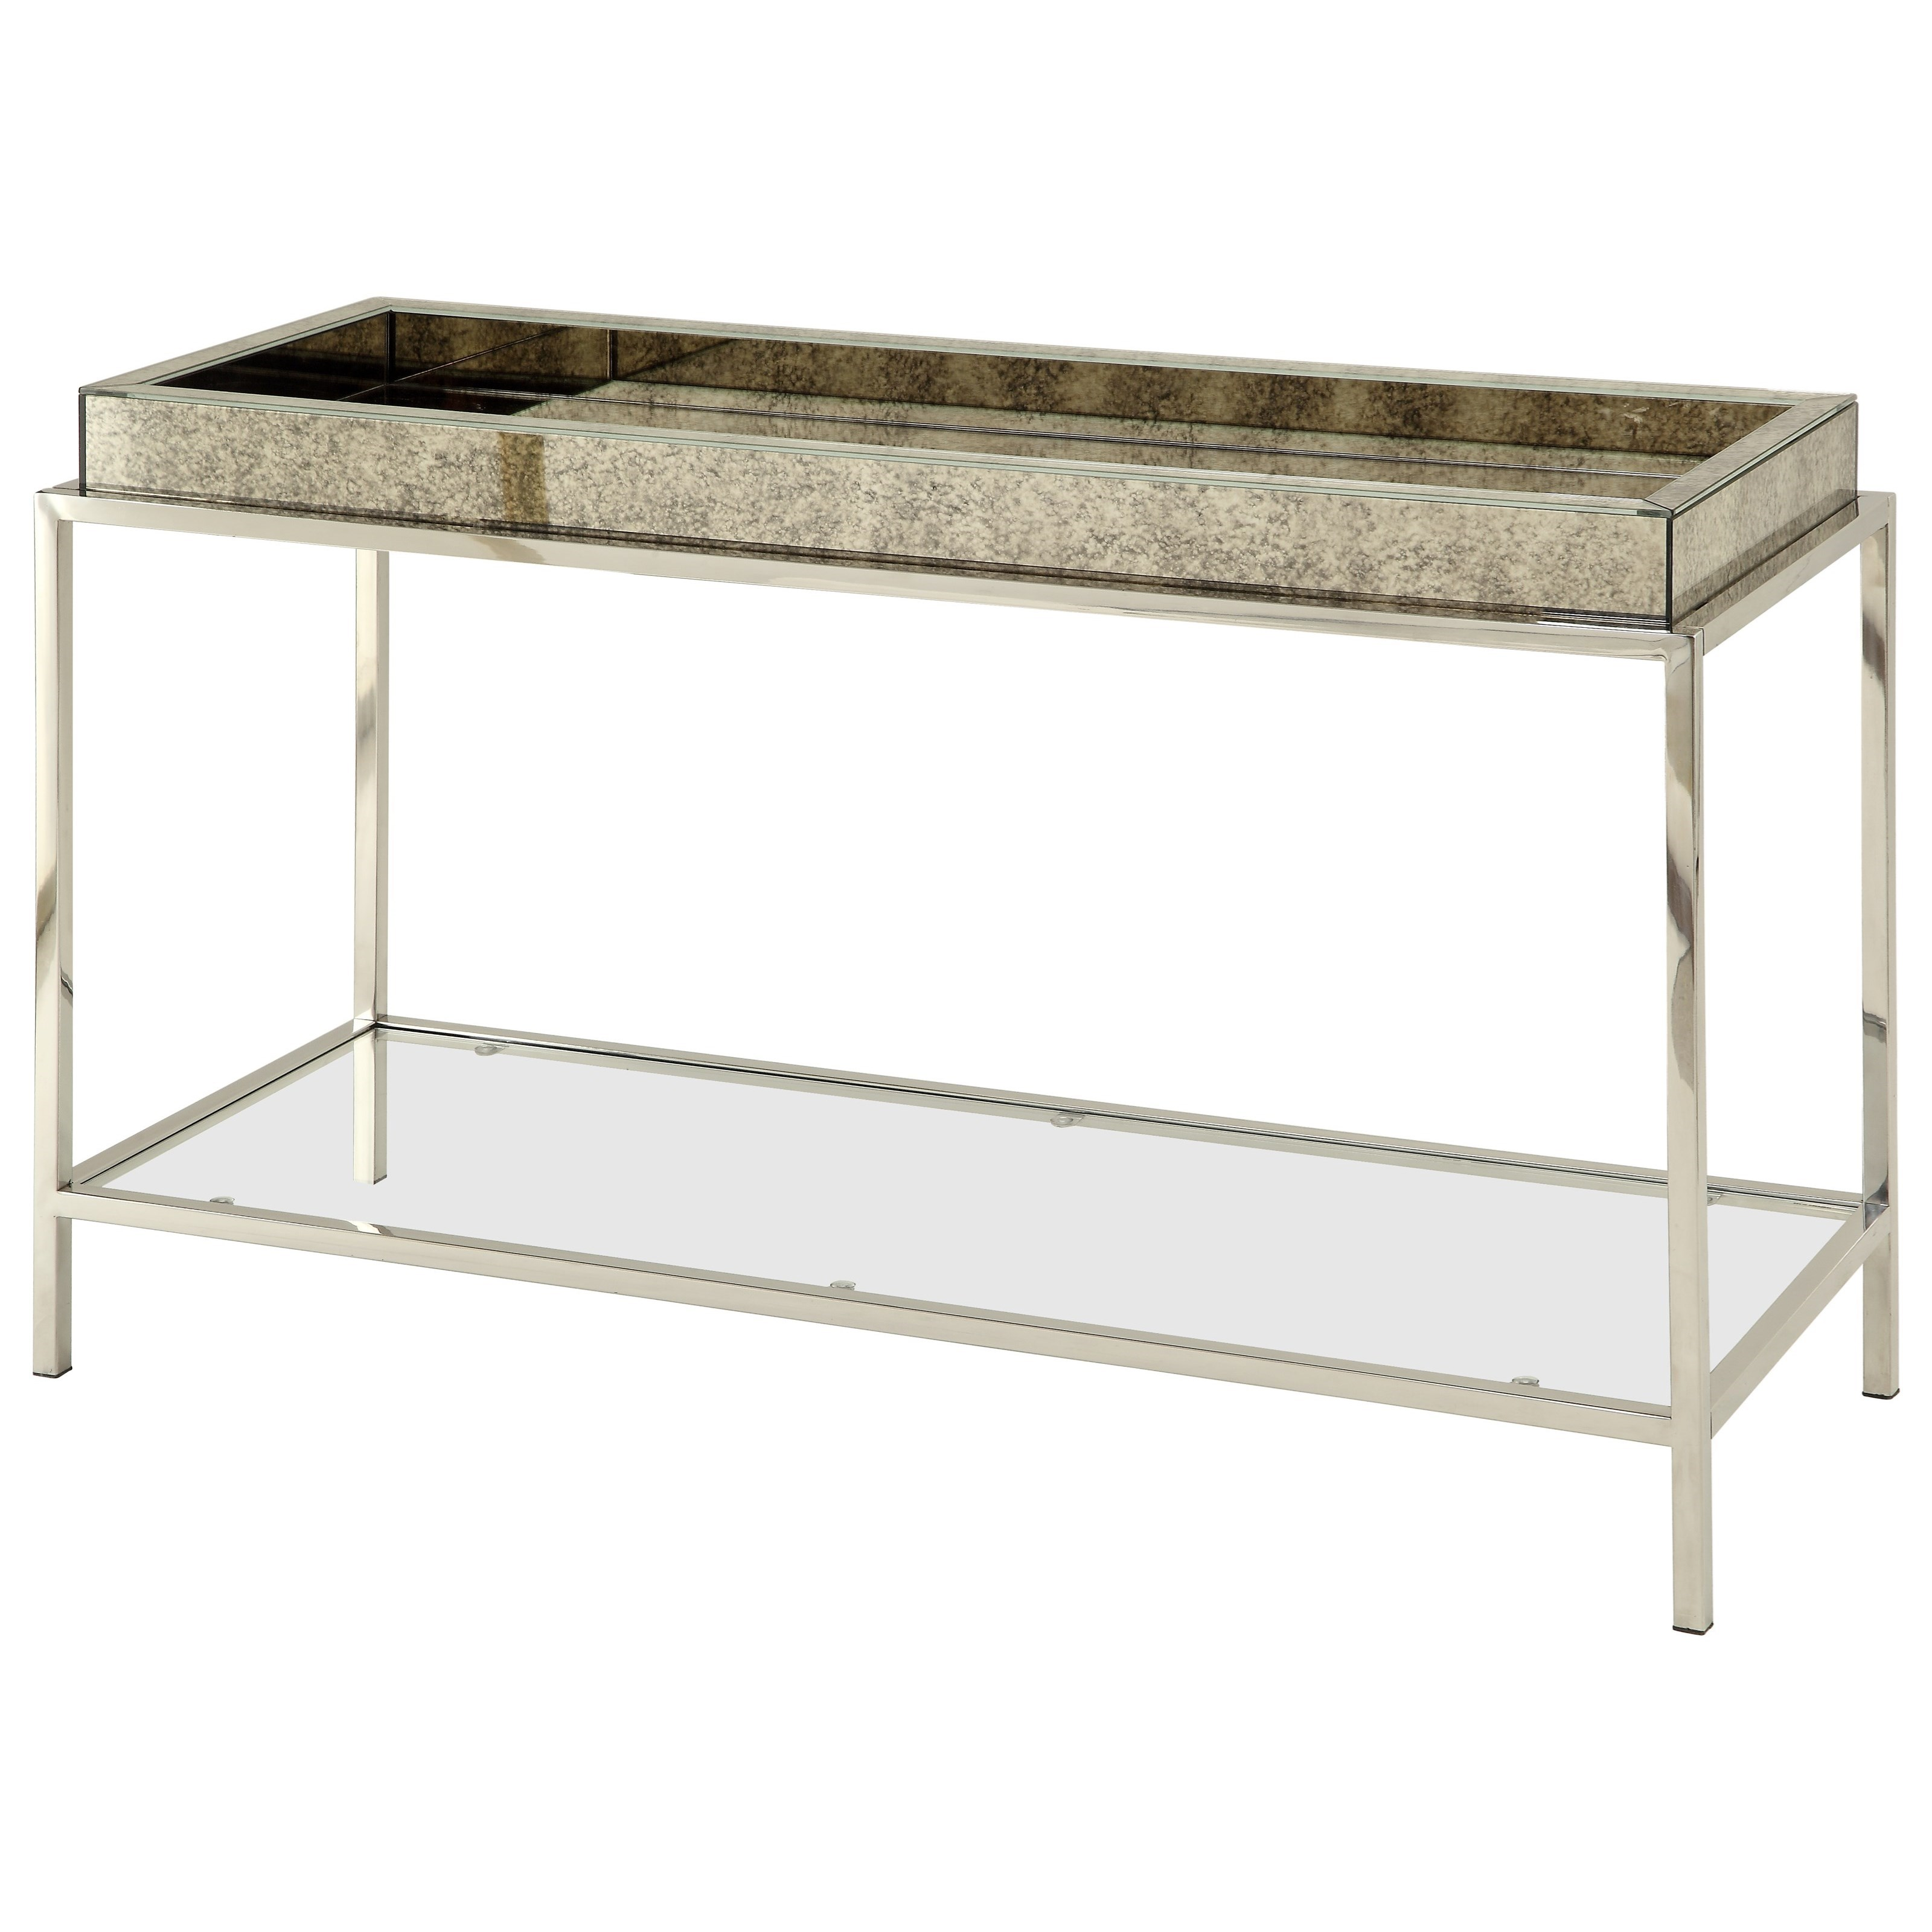 Coast to Coast Imports Coast to Coast Accents Tray Top Console With Glass Shelf - Item Number: 78640